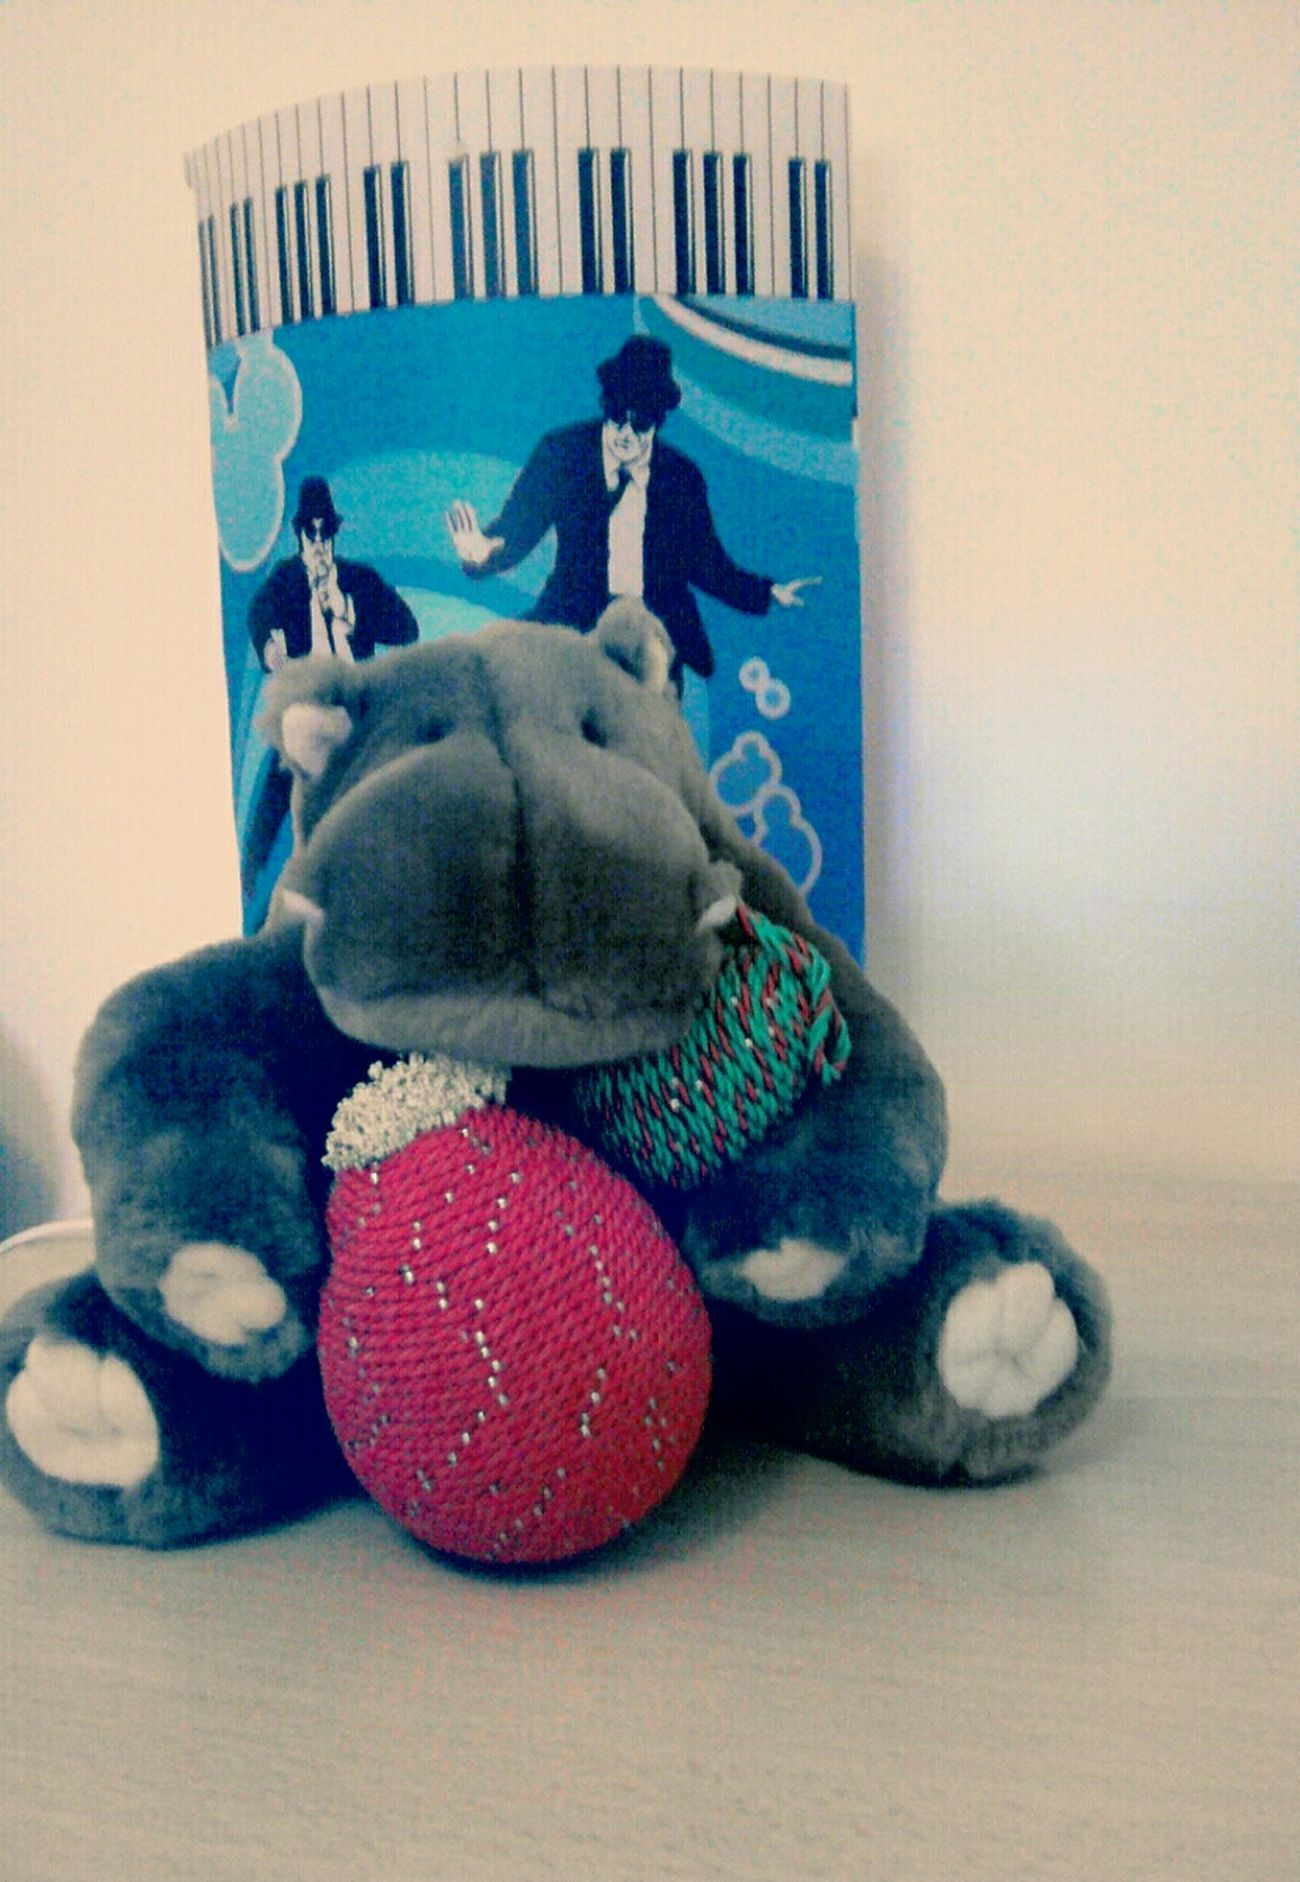 Hippo Peluche Colored Eggs Music Blue Red Sweet Better Together Getting Creative